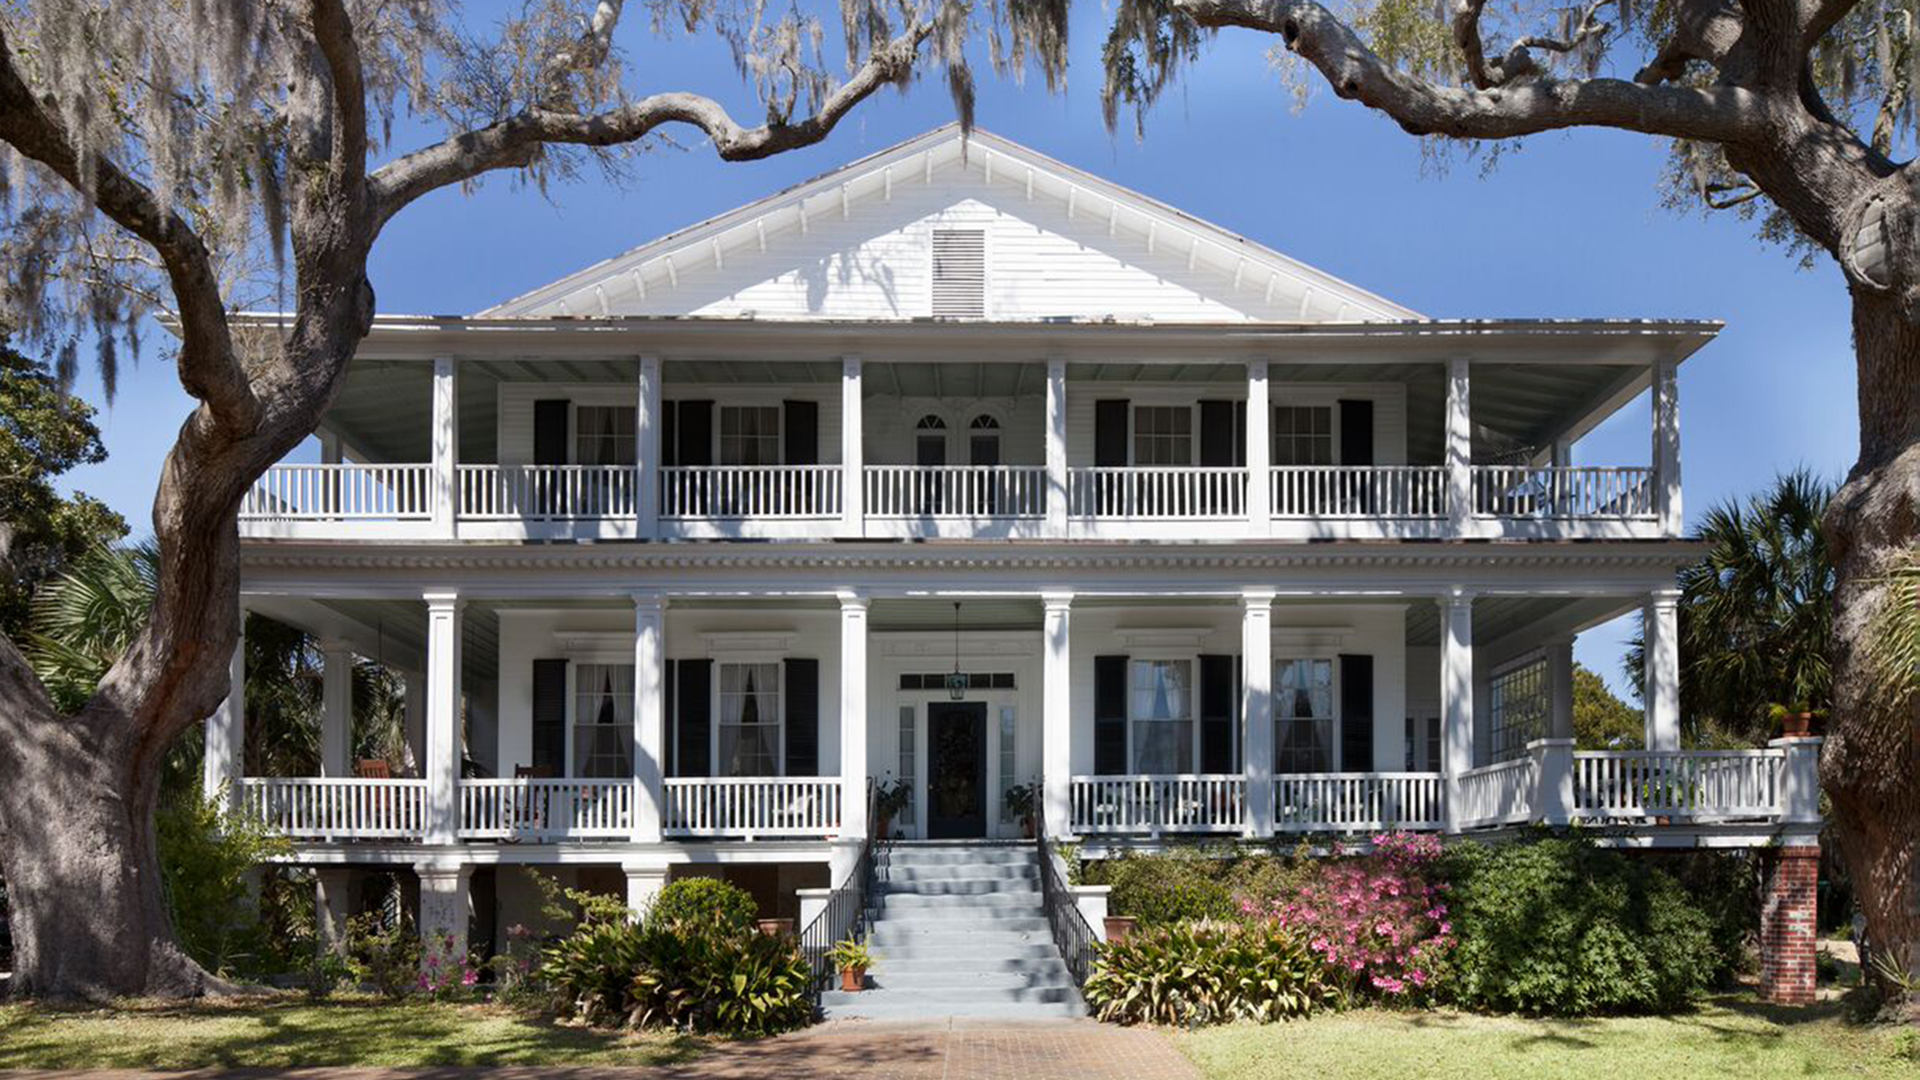 39 the big chill 39 house in south carolina was recently sold. Black Bedroom Furniture Sets. Home Design Ideas